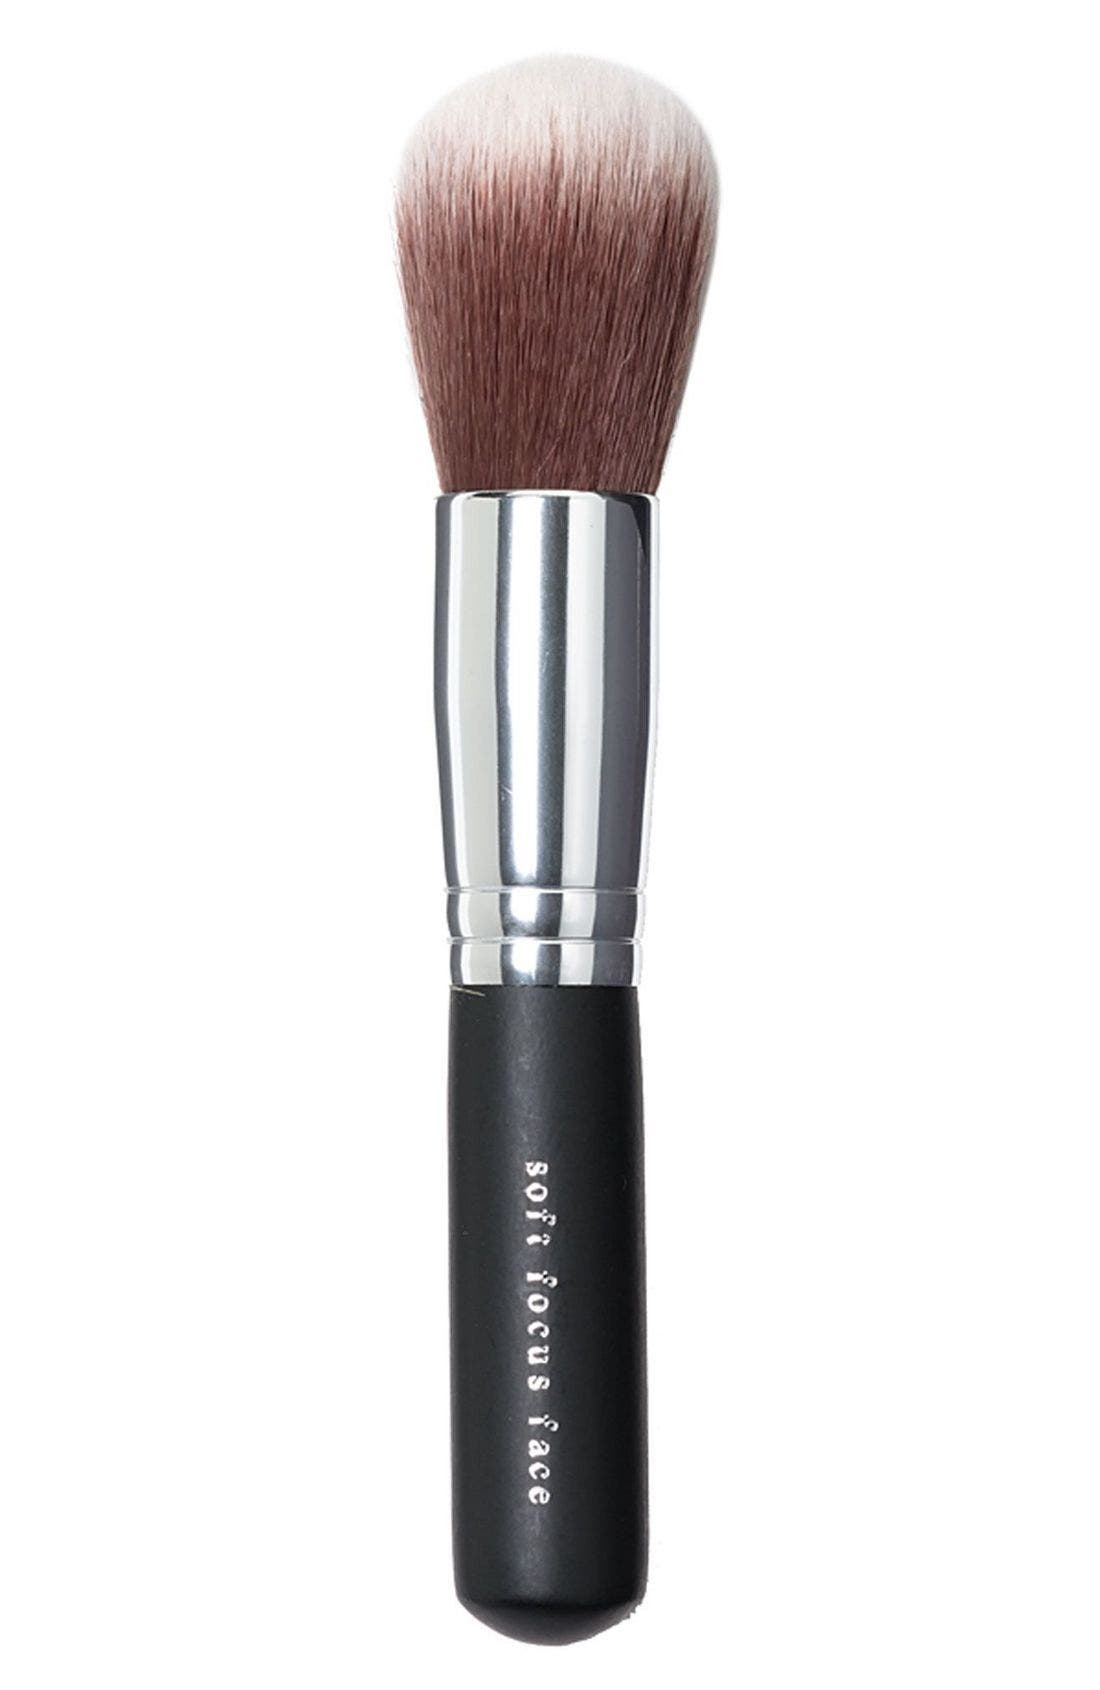 Soft Focus Face Brush,                         Main,                         color, 000